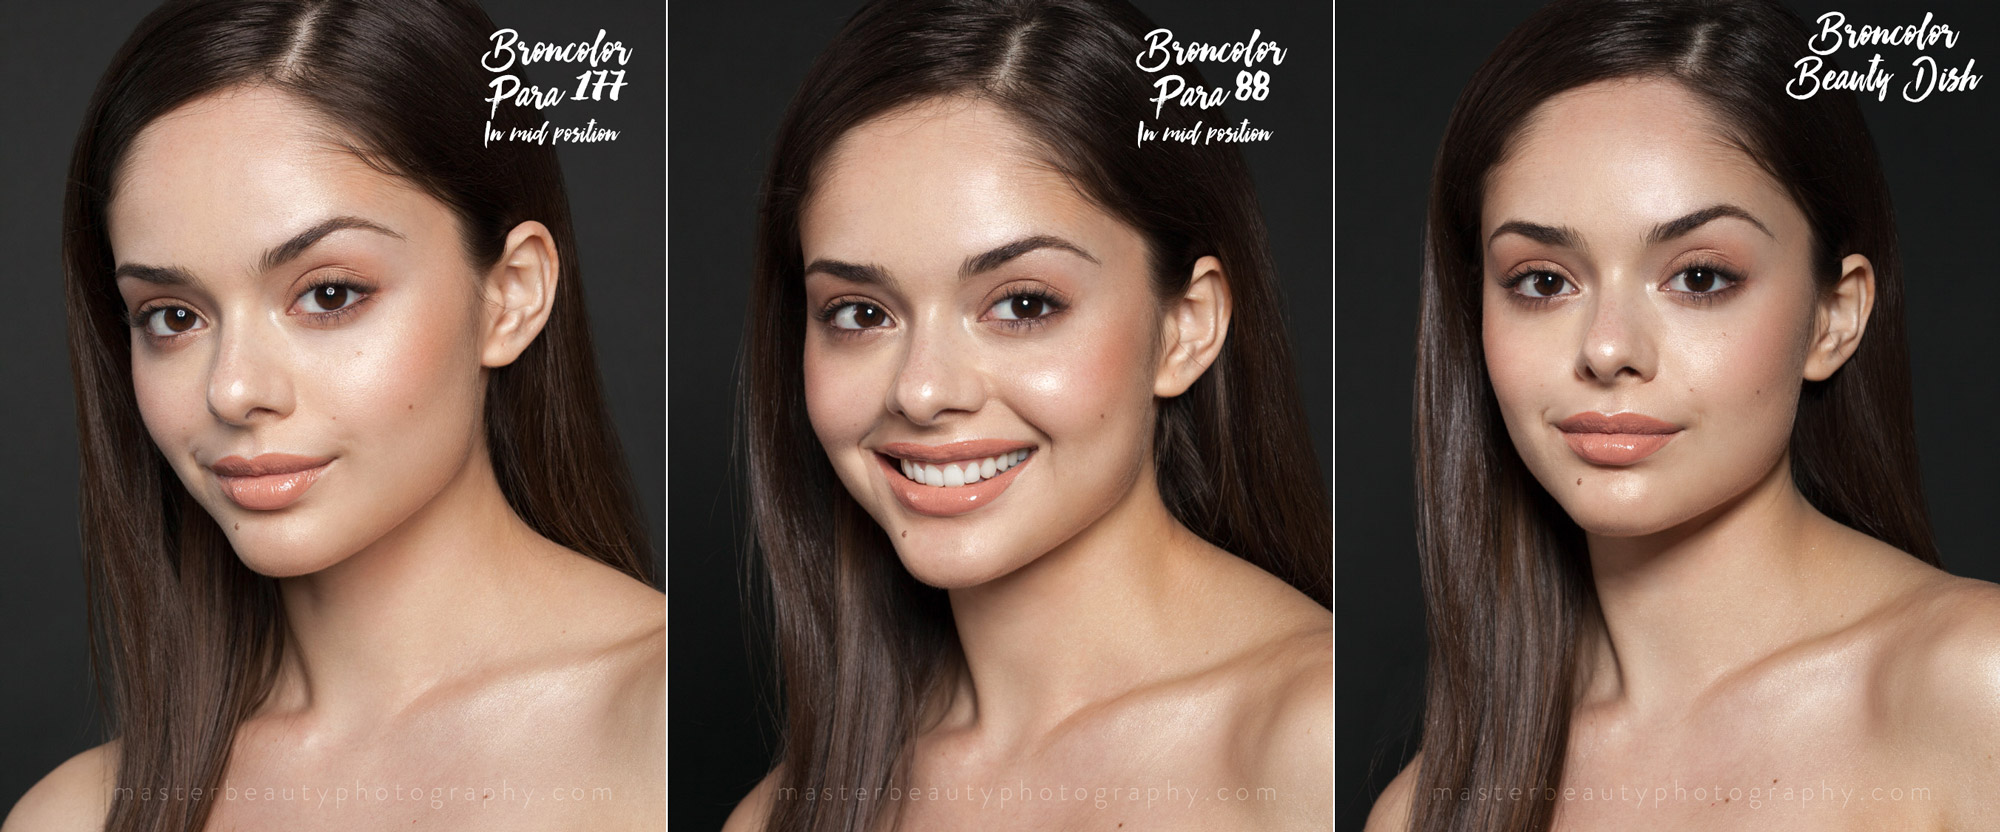 PROTECTED: SHOOTING BEAUTY WITH BRONCOLOR PARAS VS. BEAUTY DISH